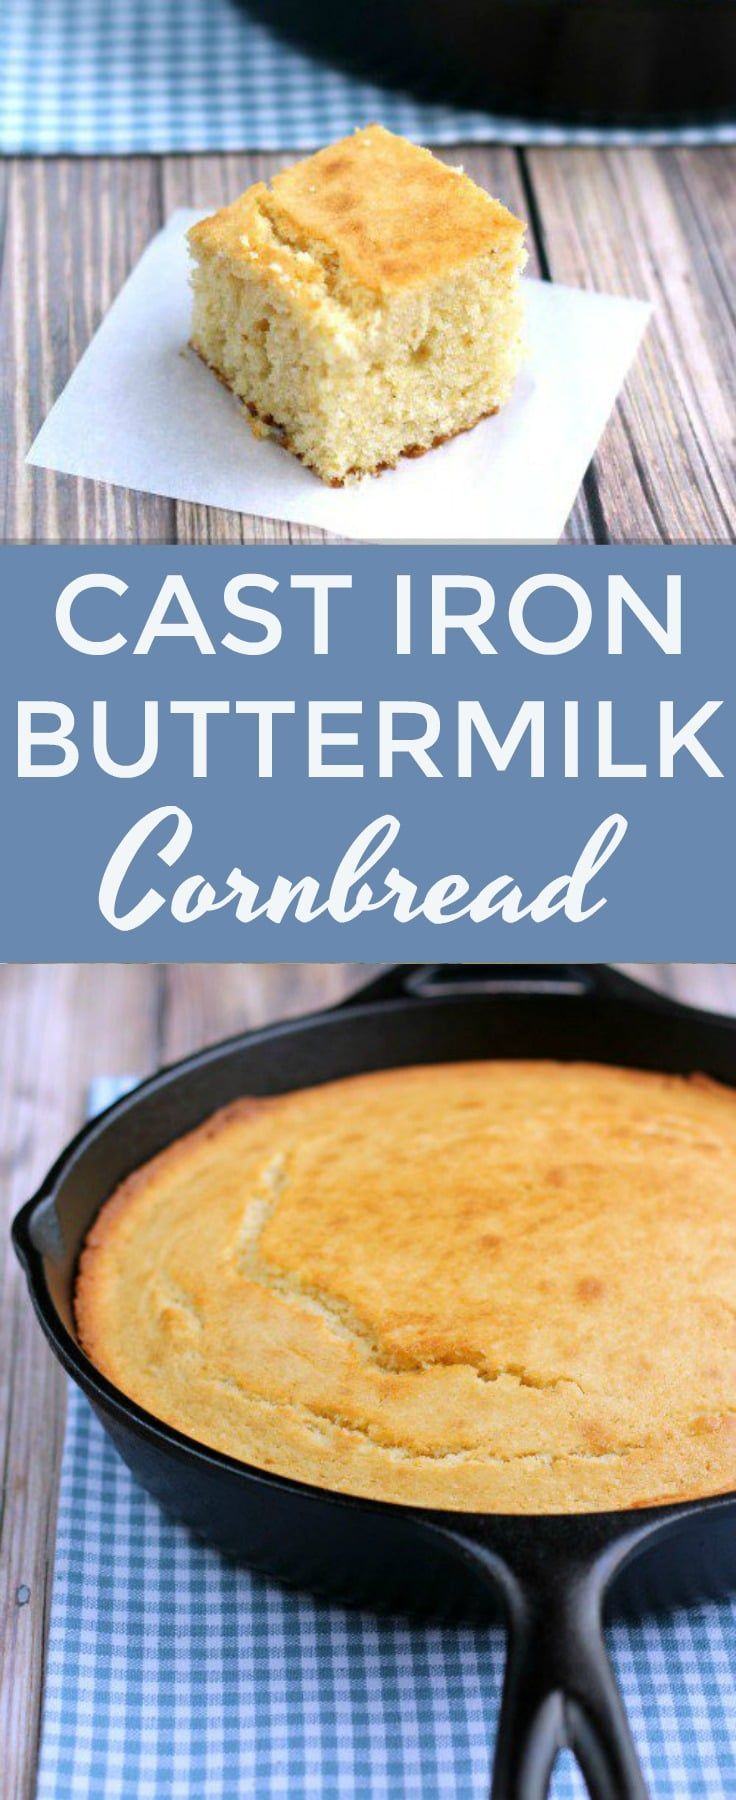 Cast Iron Buttermilk Cornbread Recipe Recipe Buttermilk Cornbread Recipes Corn Bread Recipe